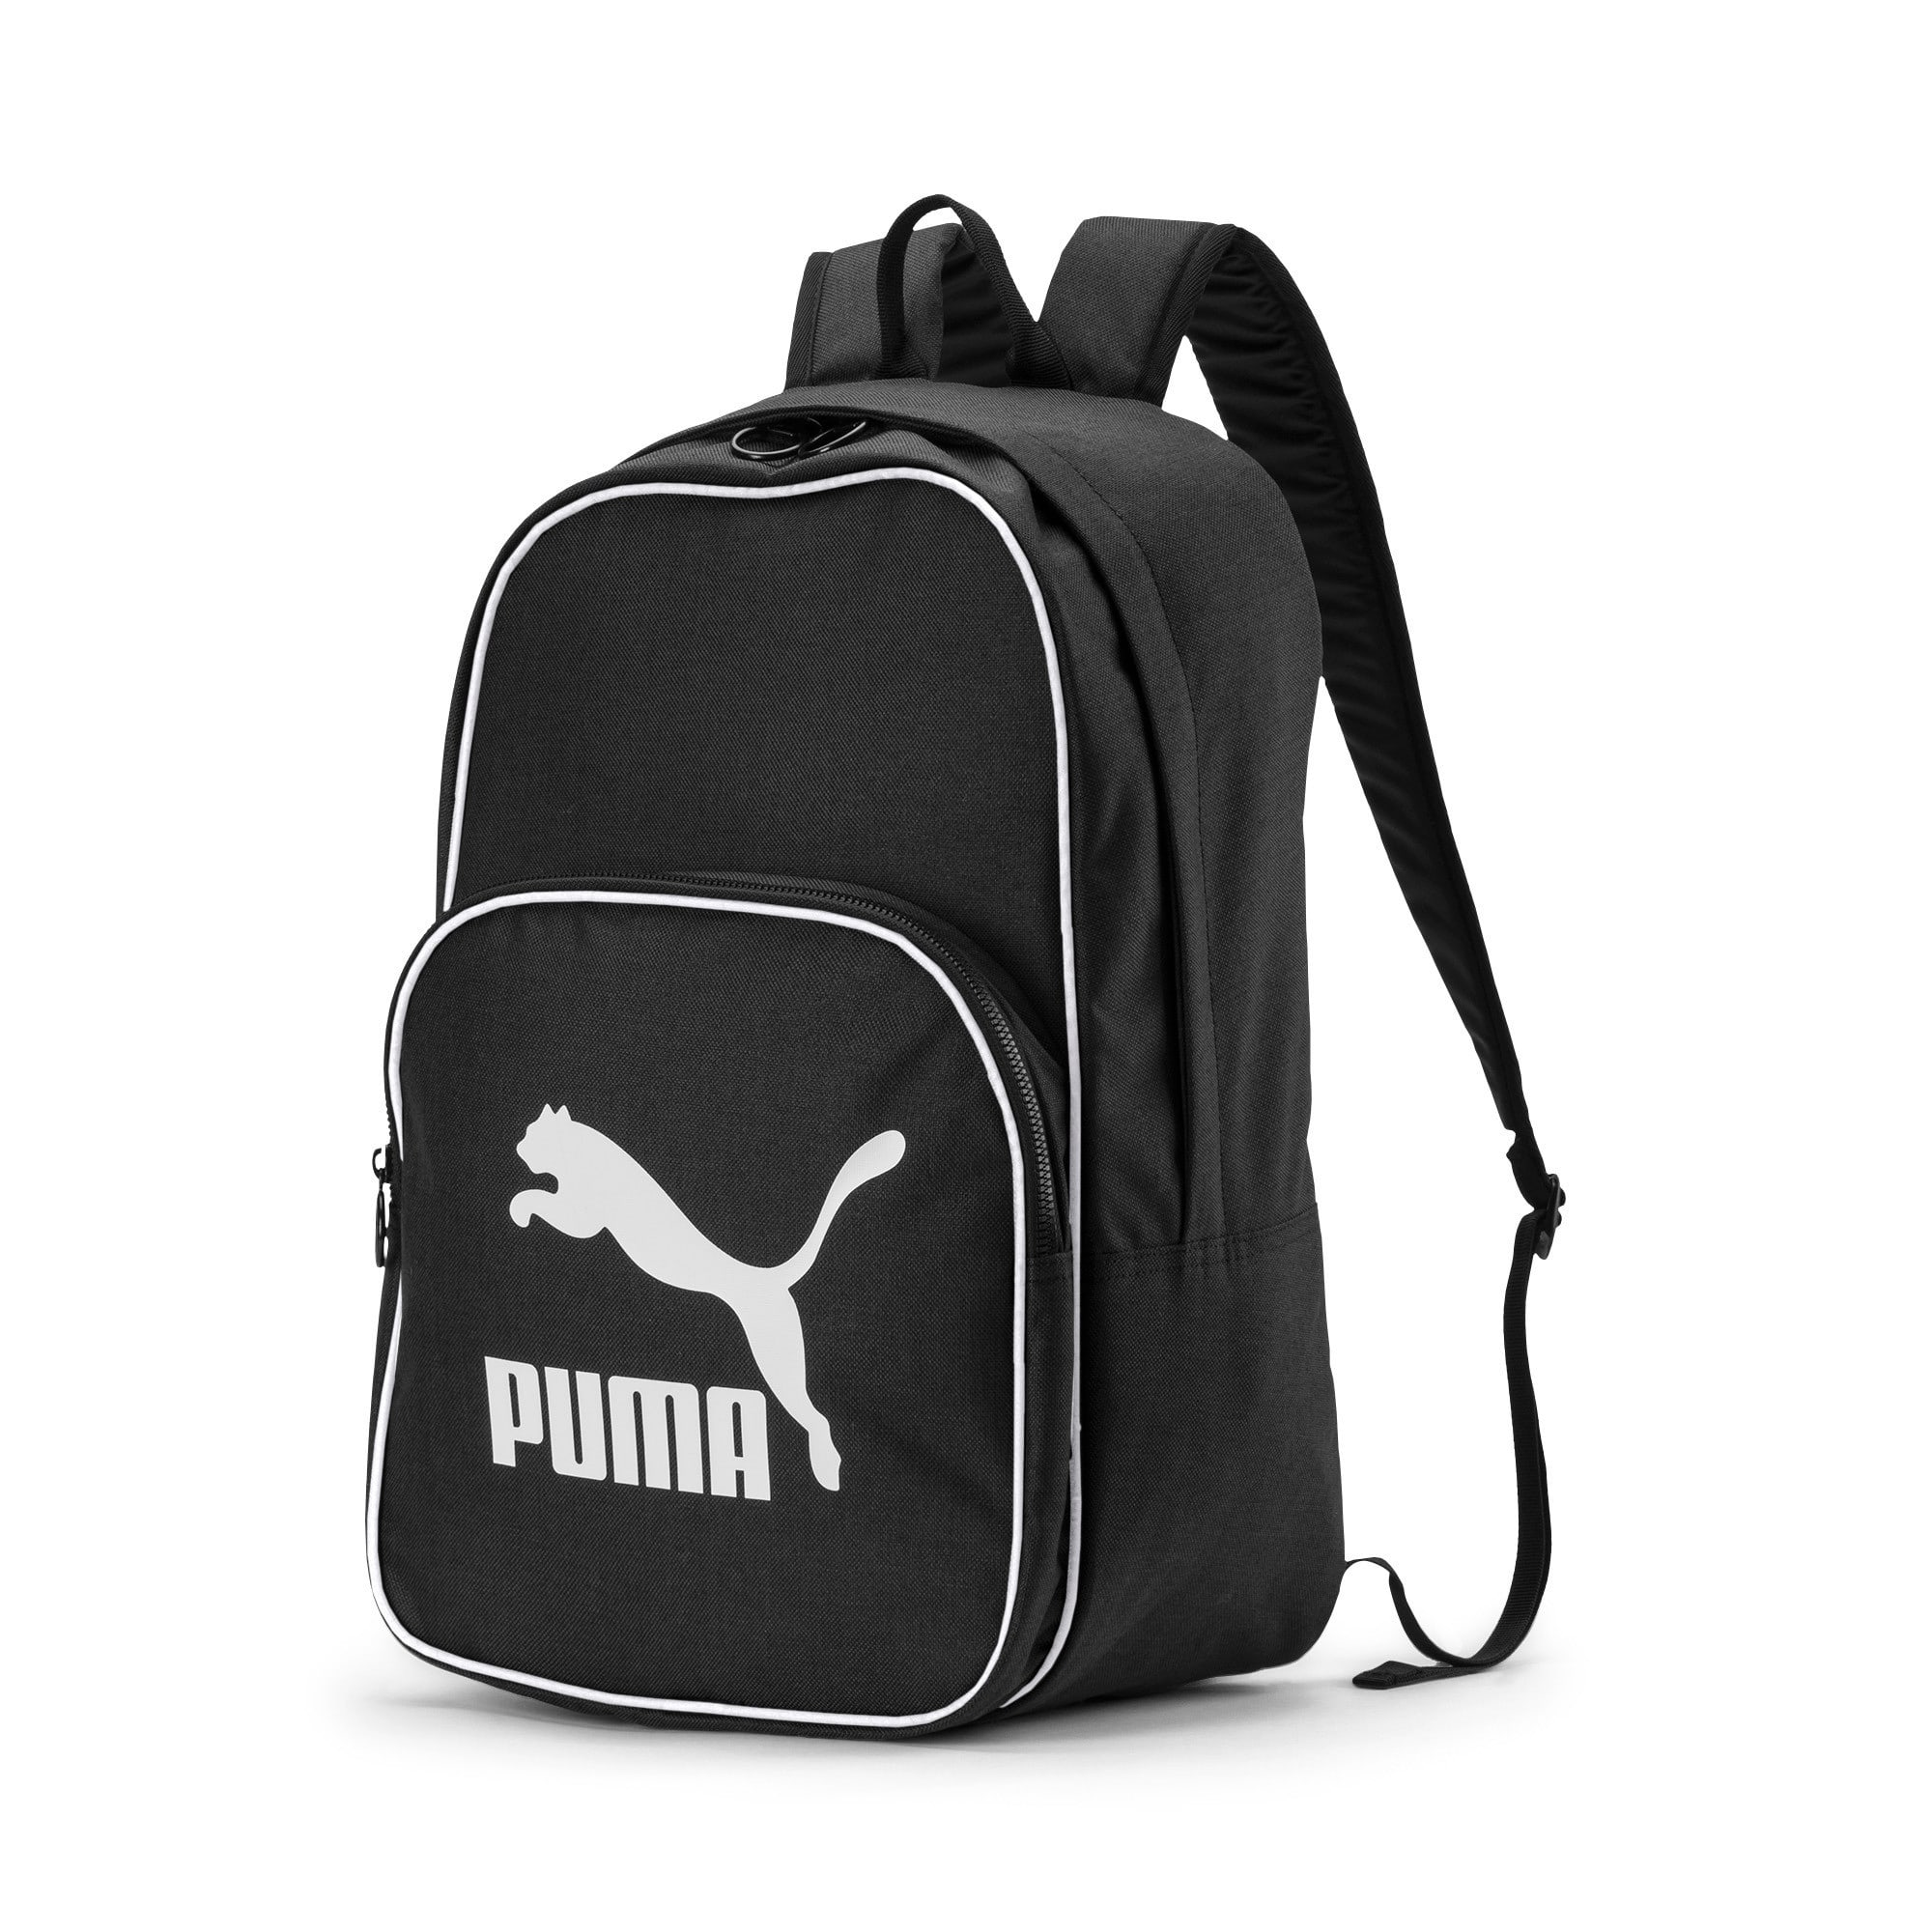 Thumbnail 1 of Originals Retro Woven Backpack, Puma Black, medium